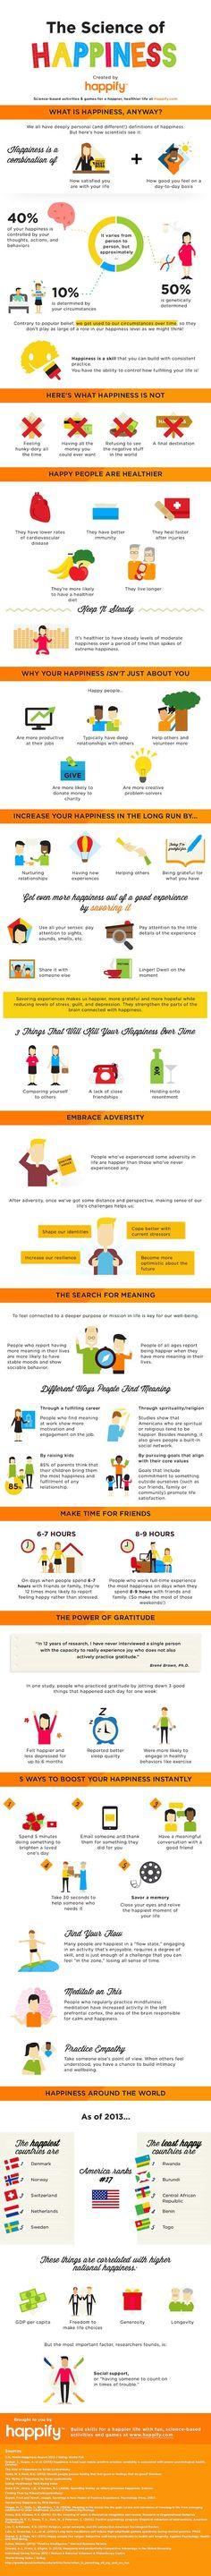 How to Become Happier Through the Power of Science [Infographic]